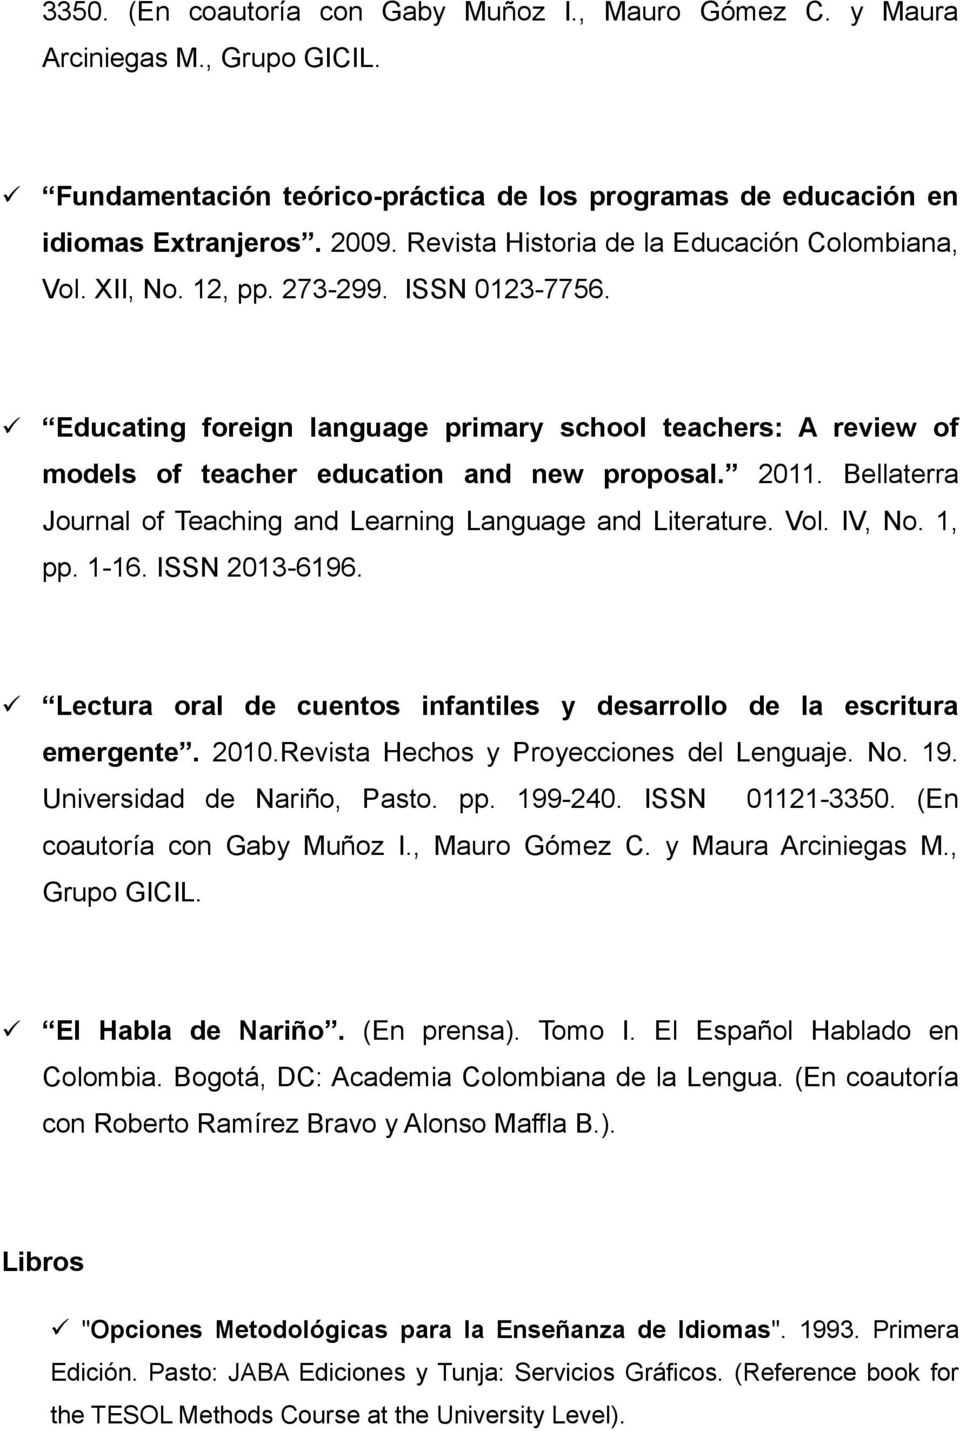 Educating foreign language primary school teachers: A review of models of teacher education and new proposal. 2011. Bellaterra Journal of Teaching and Learning Language and Literature. Vol. IV, No.